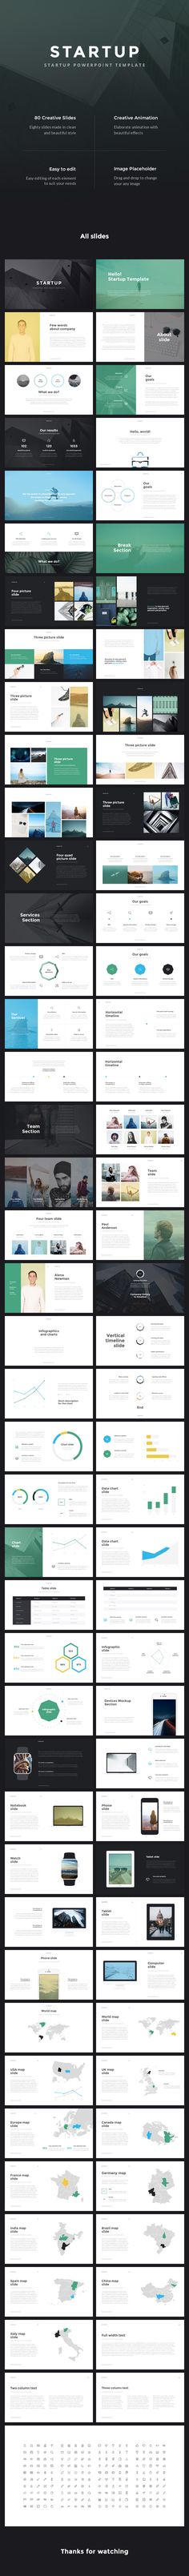 Startup - Pitch Deck PowerPoint Template - Business #PowerPoint Templates